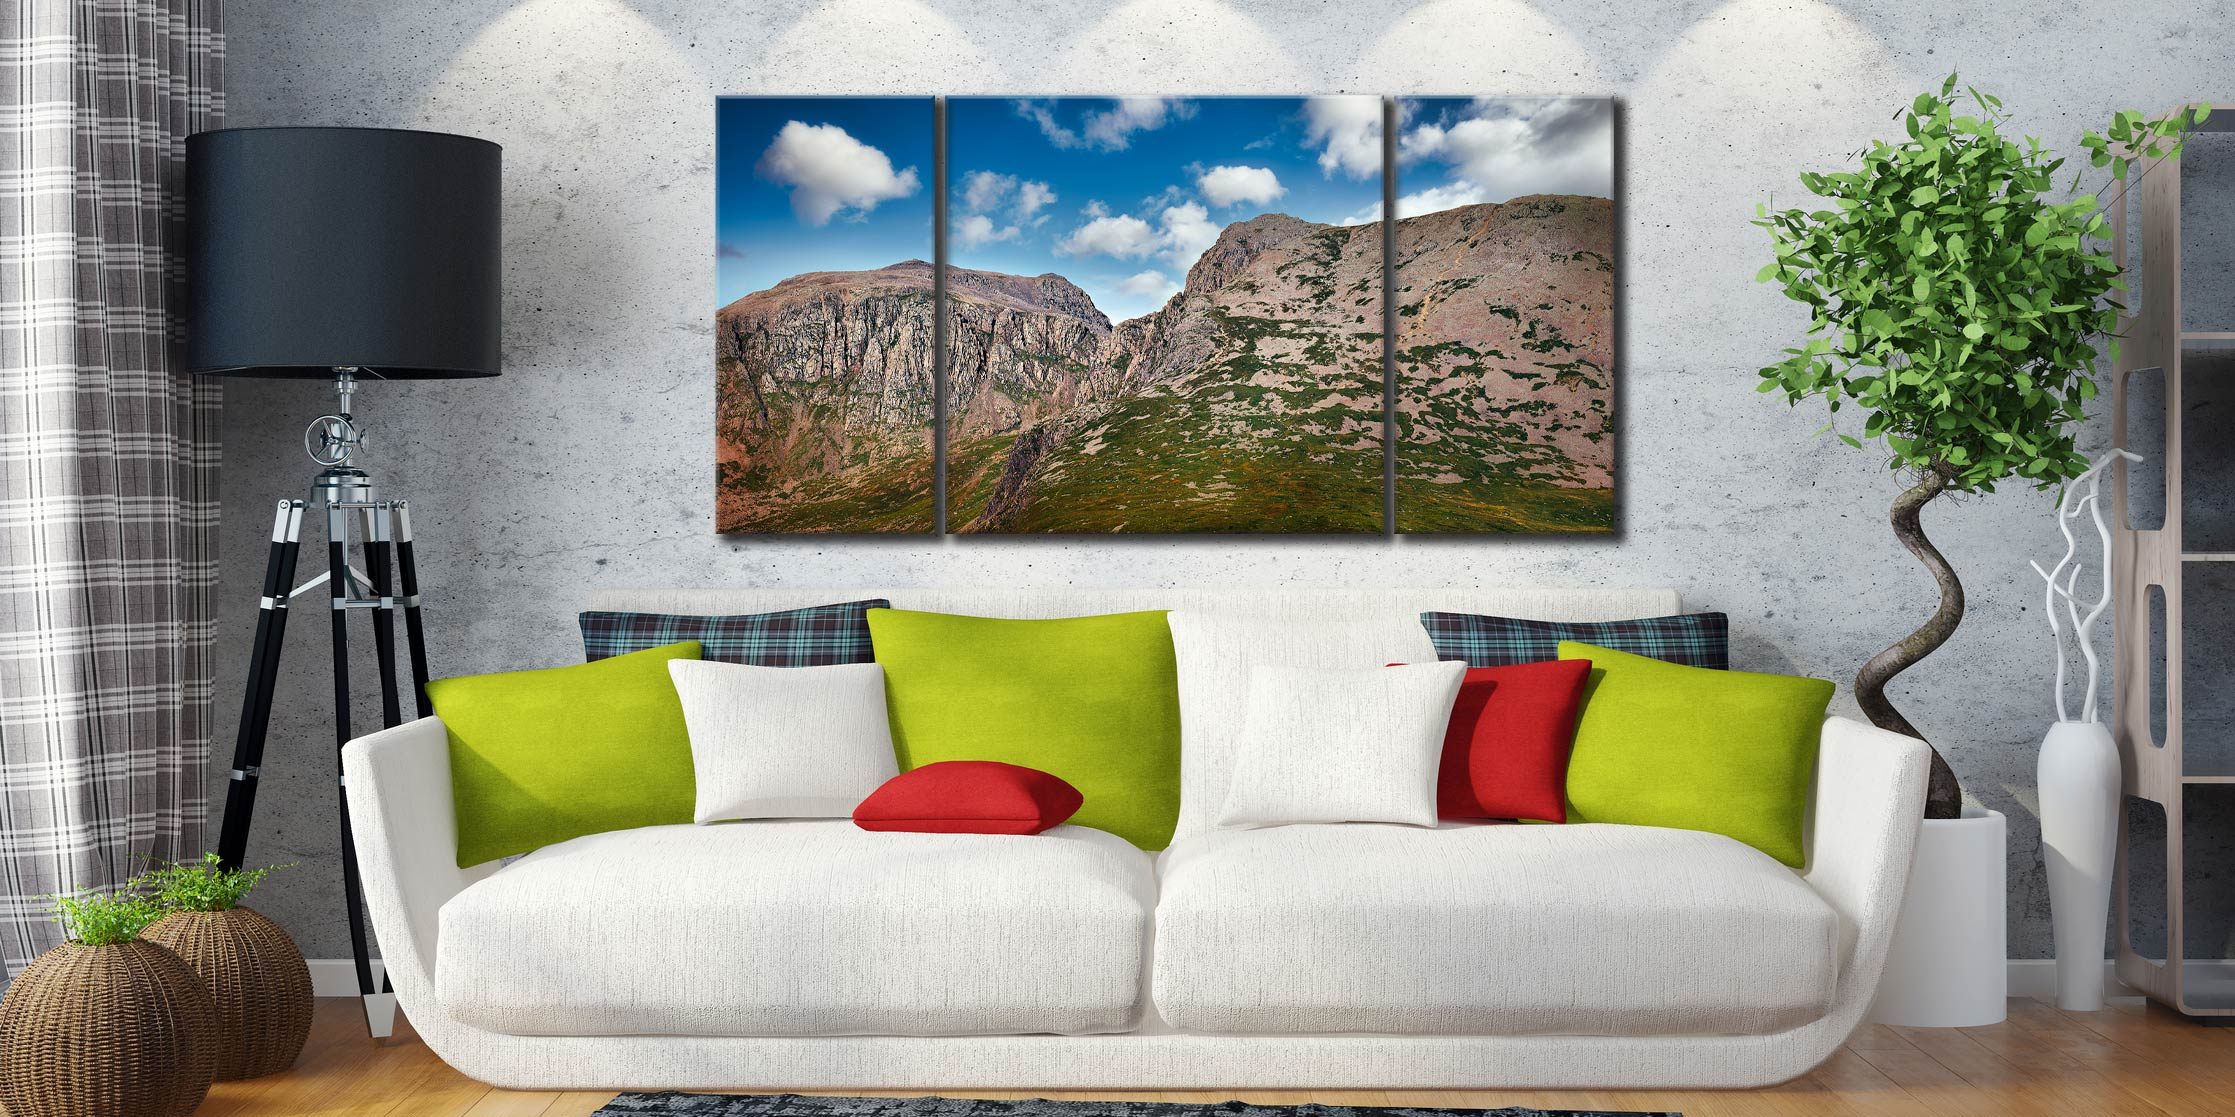 Sca Fell Pikes - 3 Panel Wide Centre Canvas on Wall